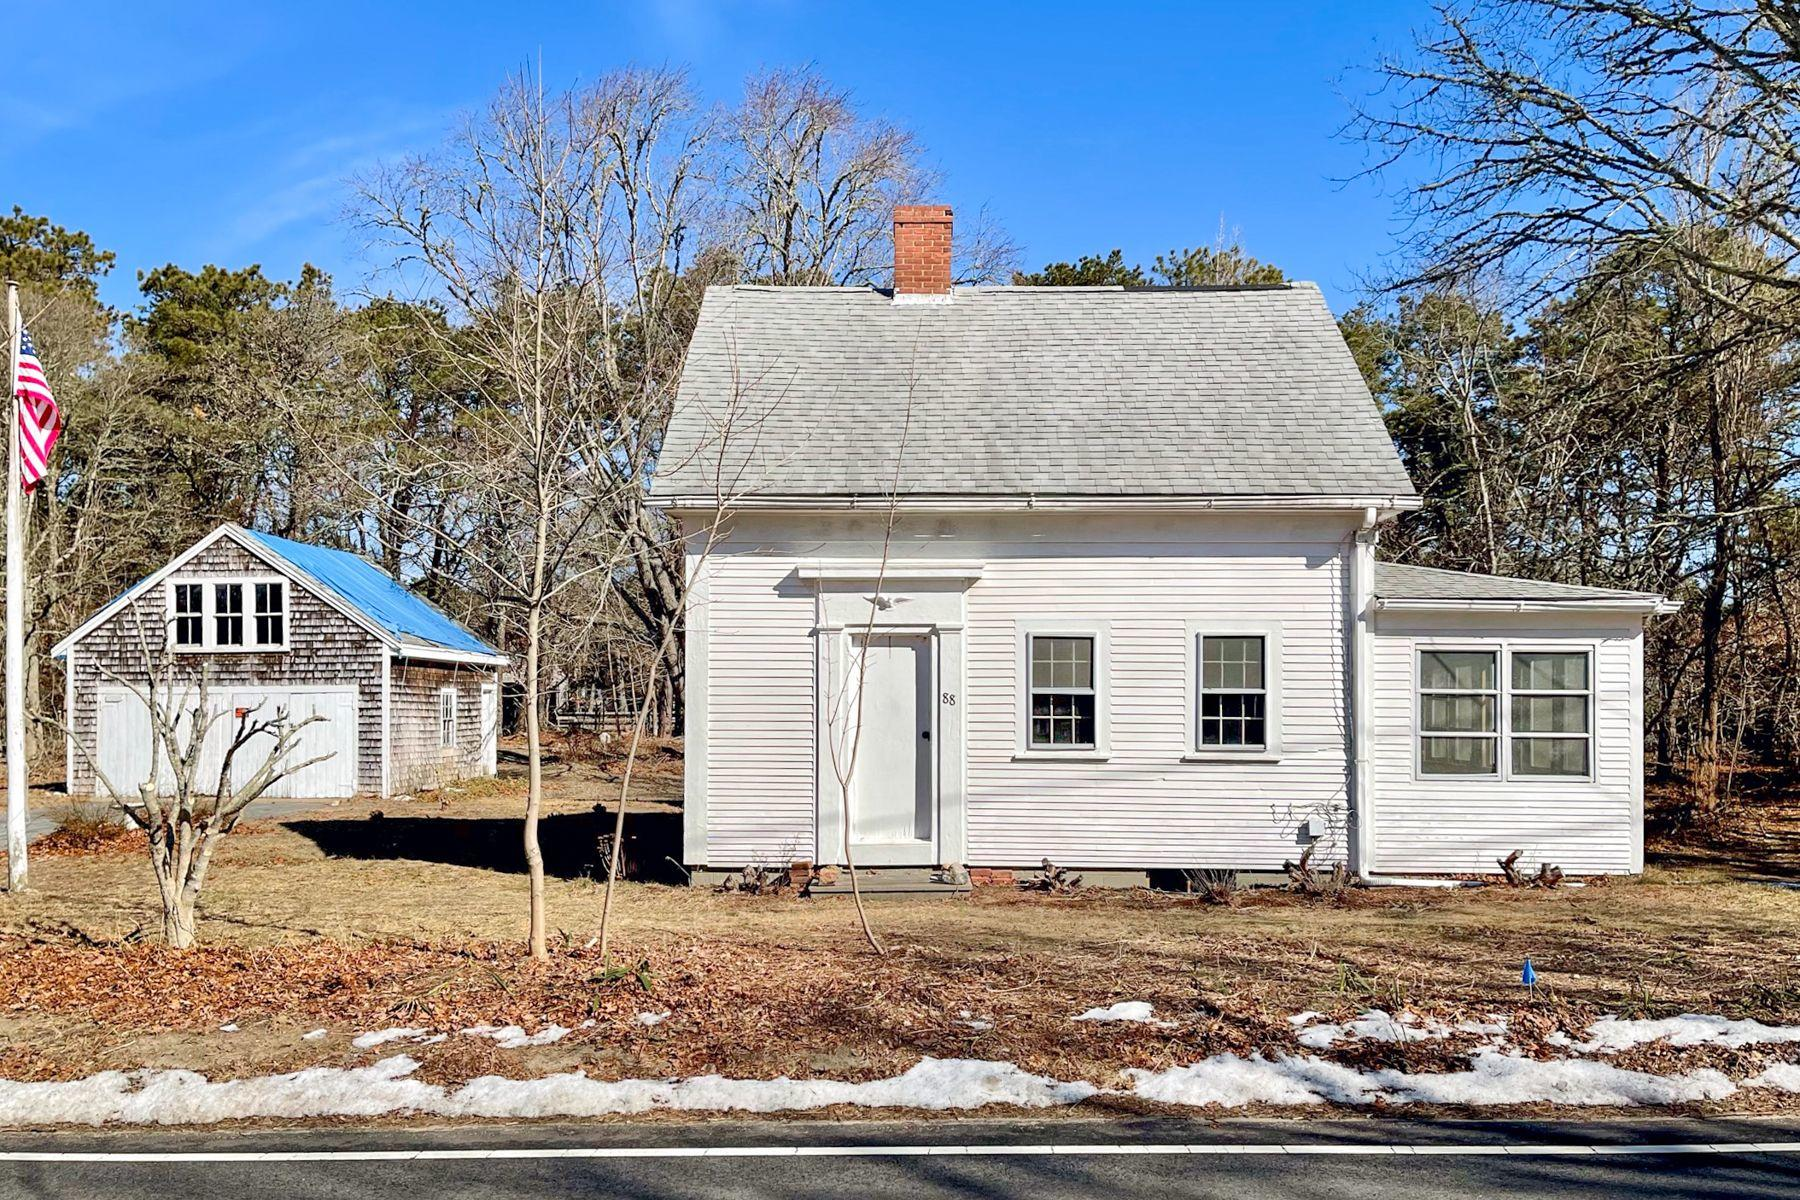 88 Main Street Extension, Harwich MA, 02645 details